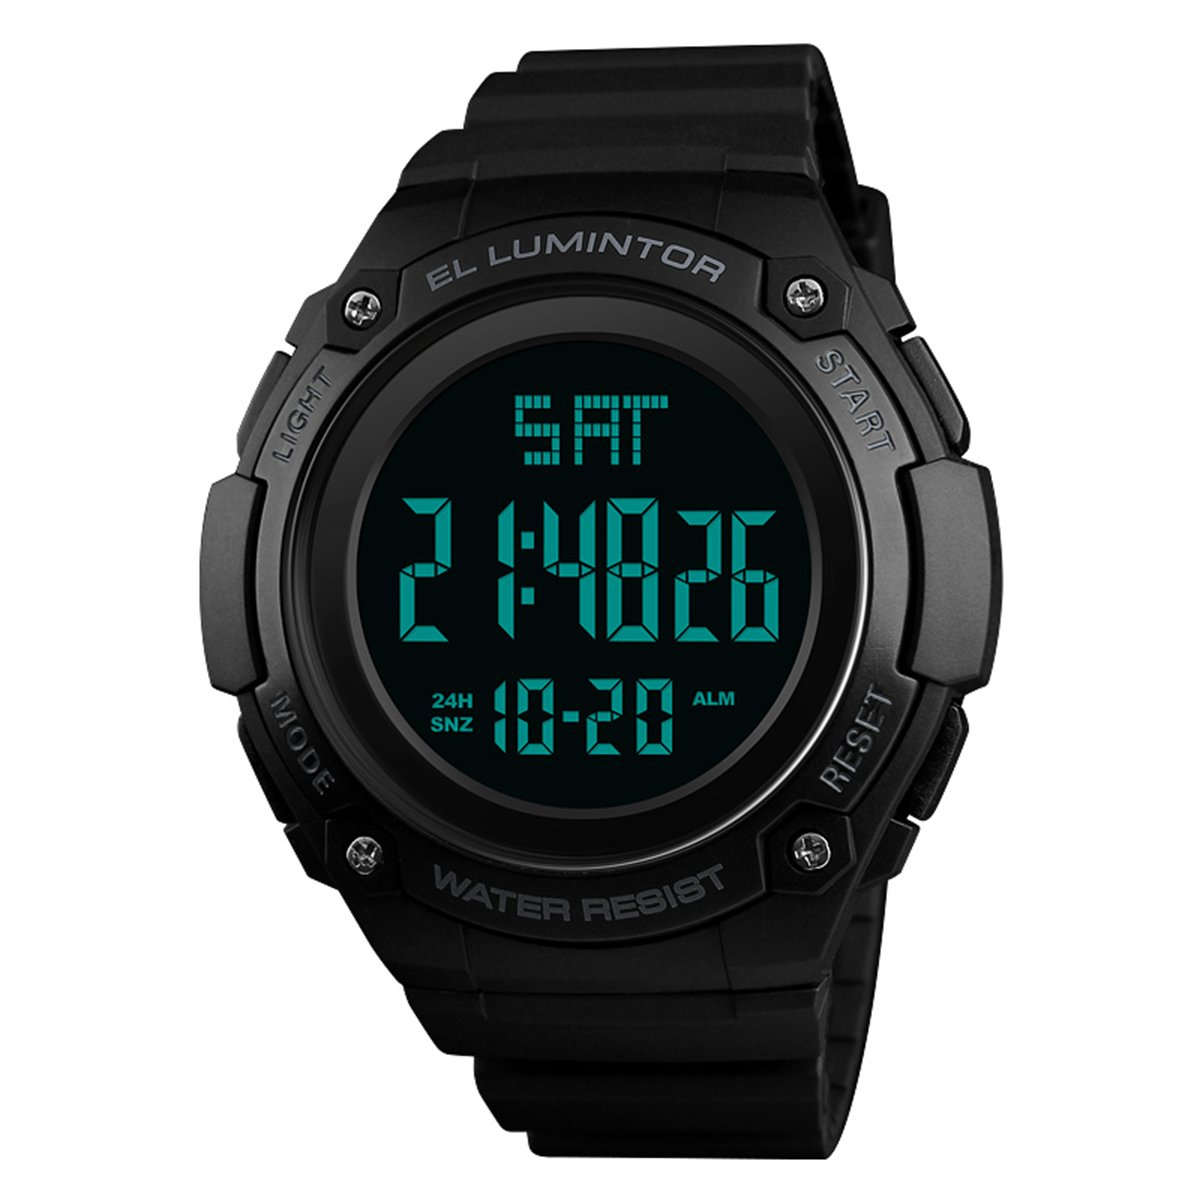 Digital Watch Mens Waterproof Outdoor Sports LED Watches Chronograph Fashion PU Band Men Wristwatch - Black by Dayllon